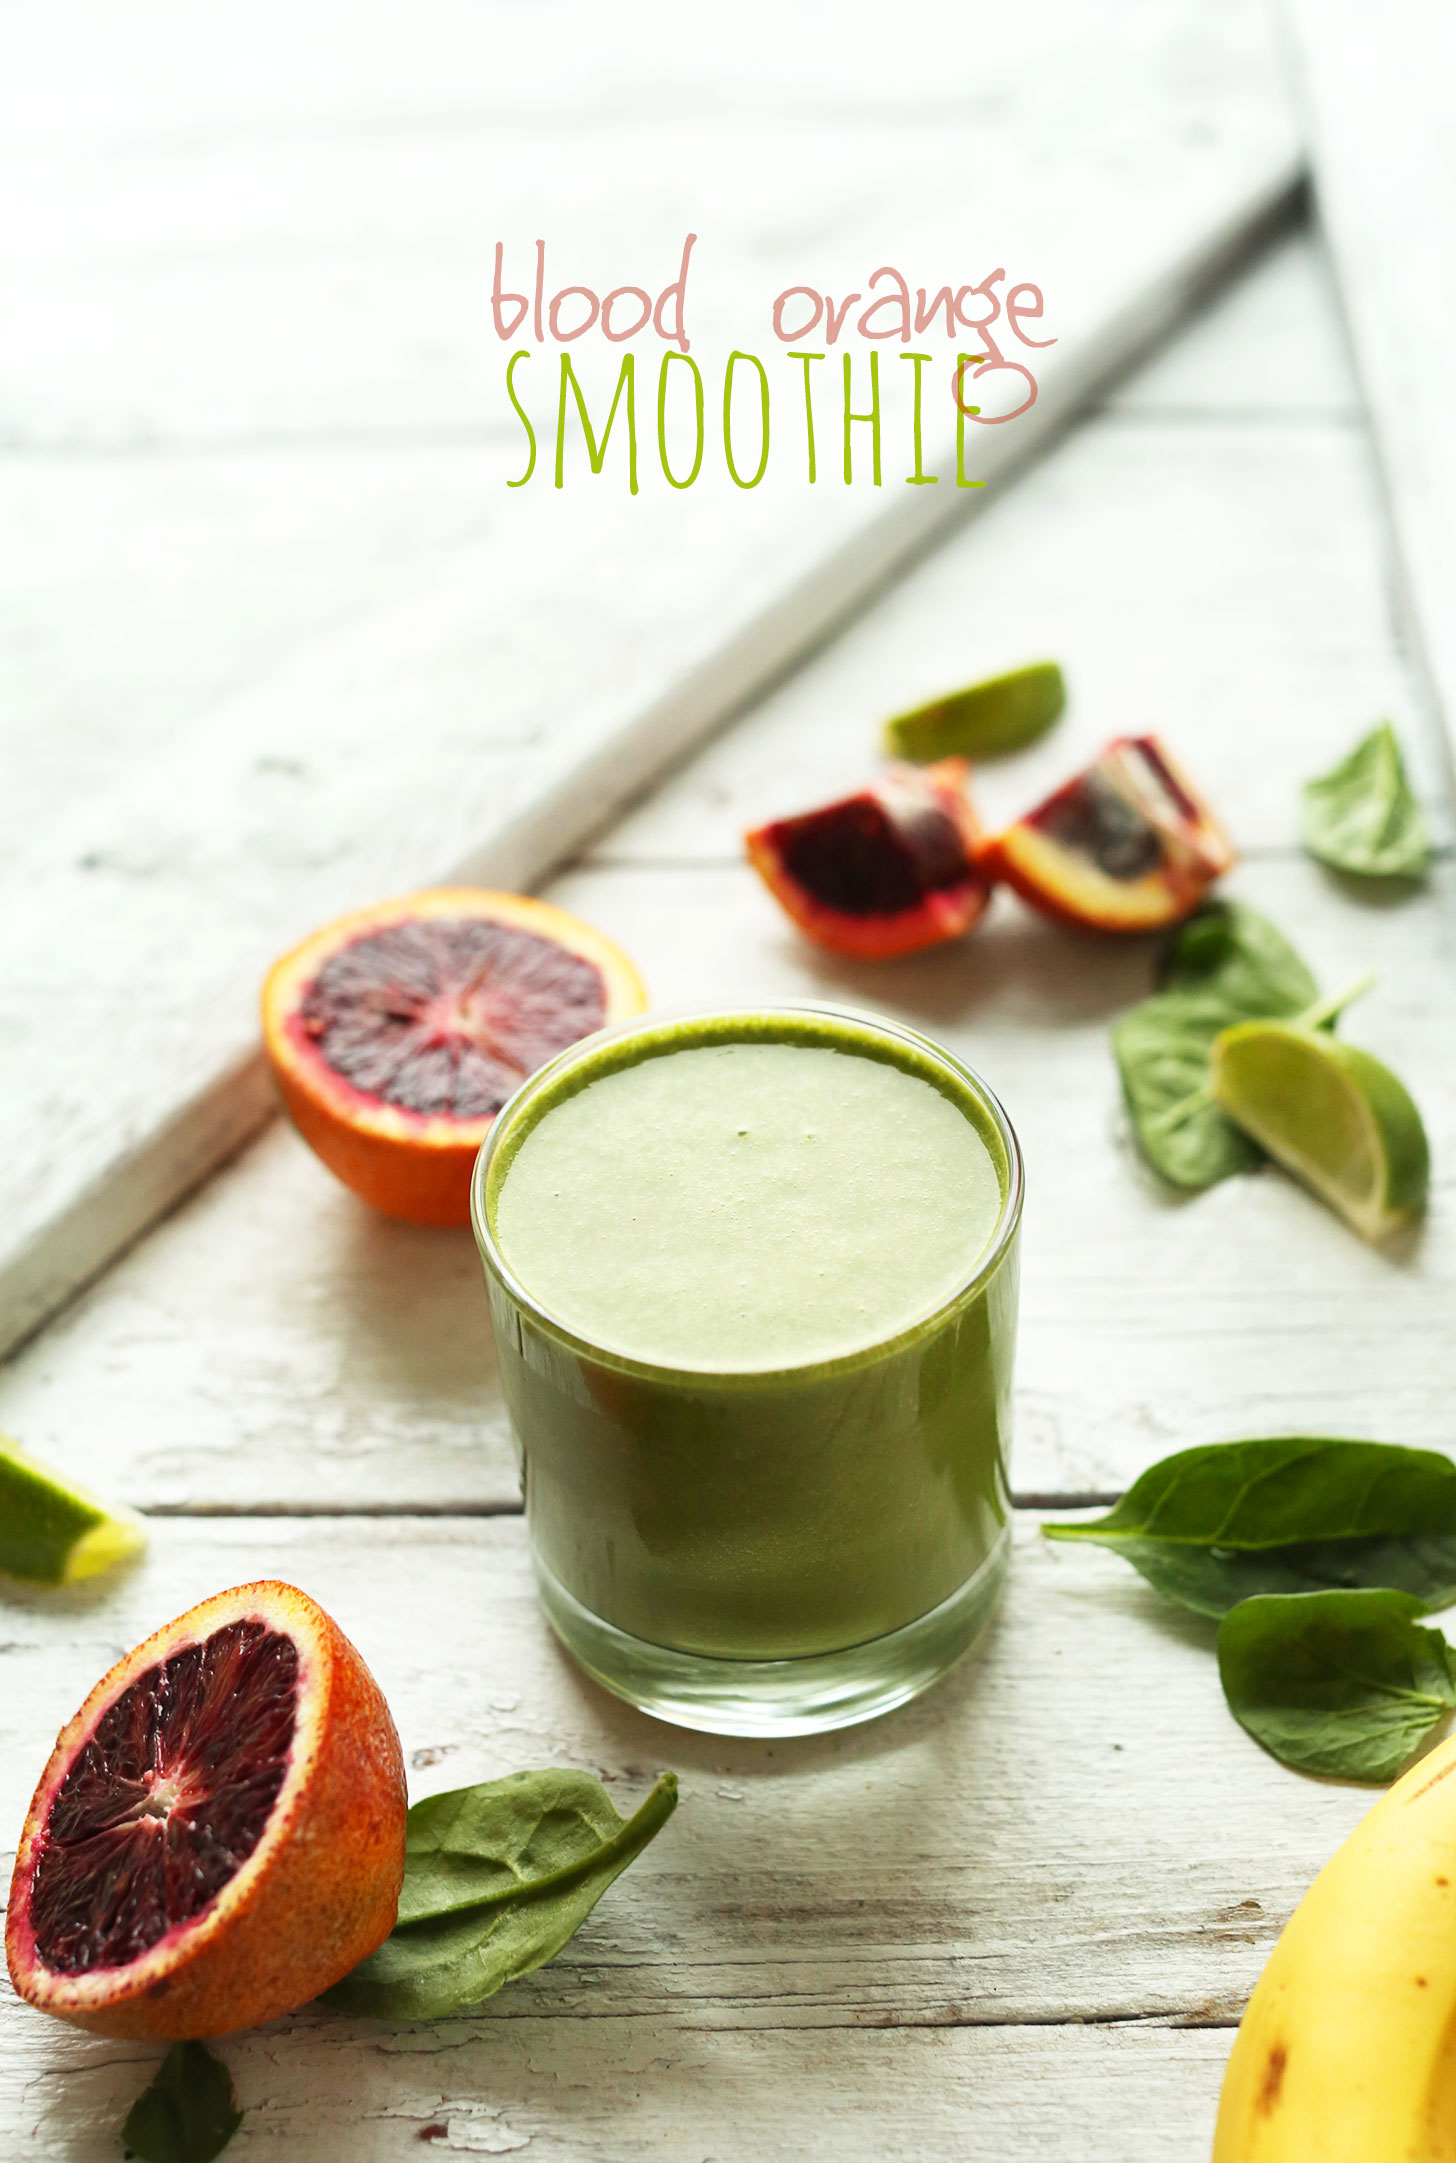 Small glass of our creamy vegan Blood Orange Green Smoothie